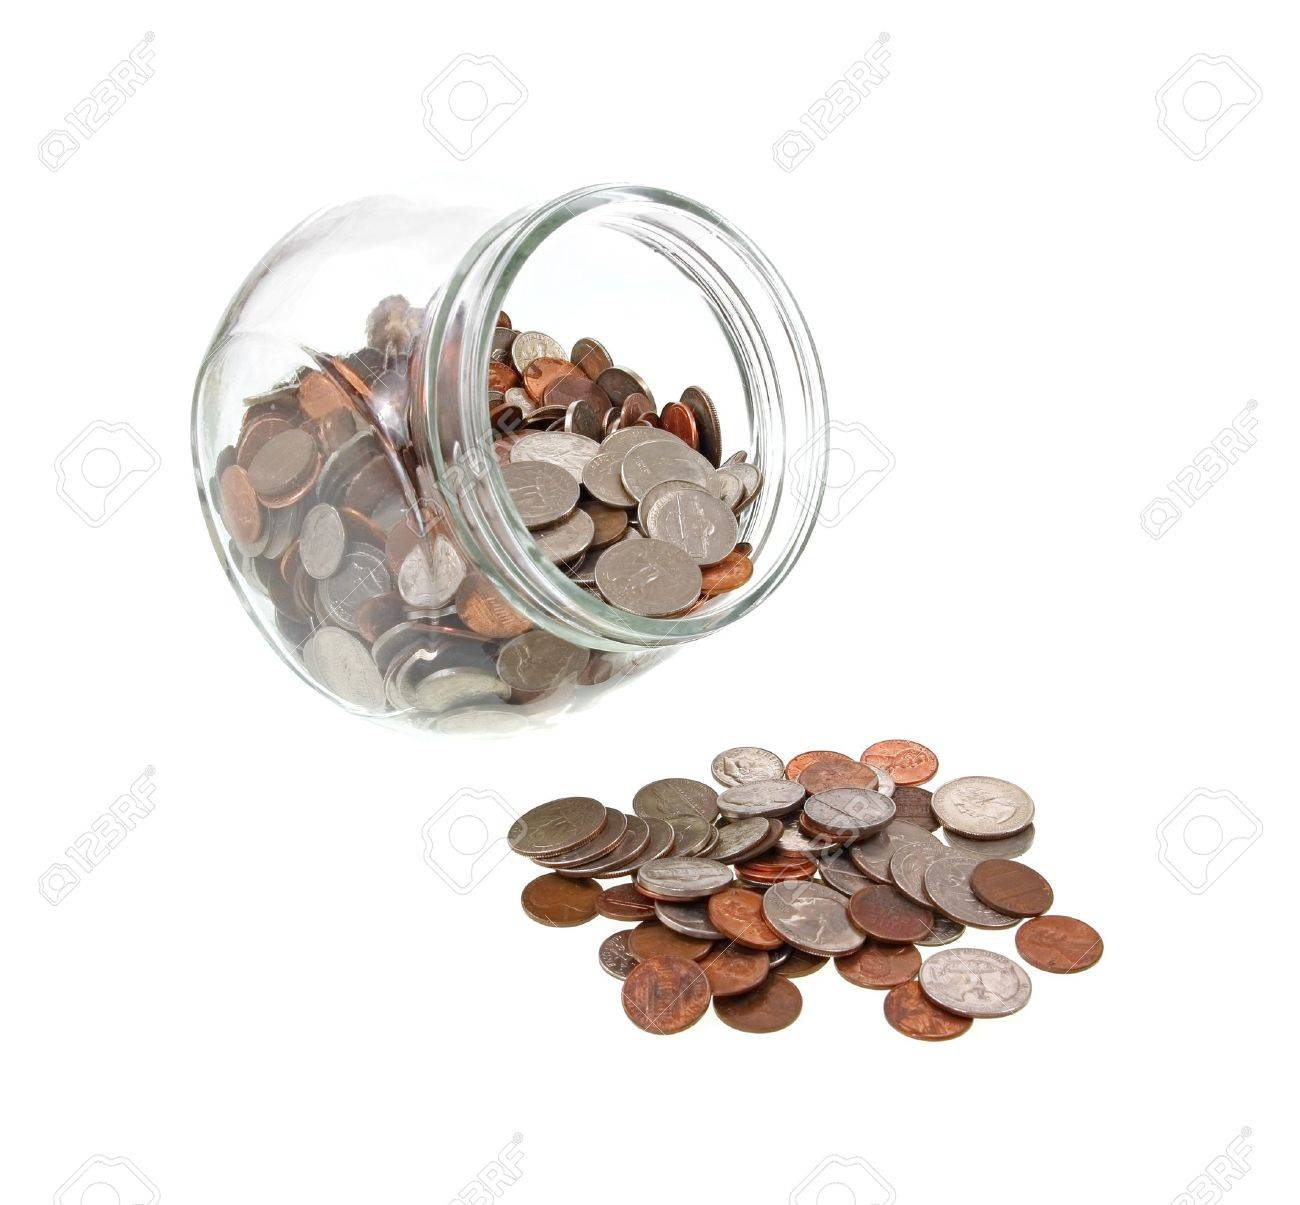 A Wide Mouth Glass Jar With Loose Change And Several Coins In ...